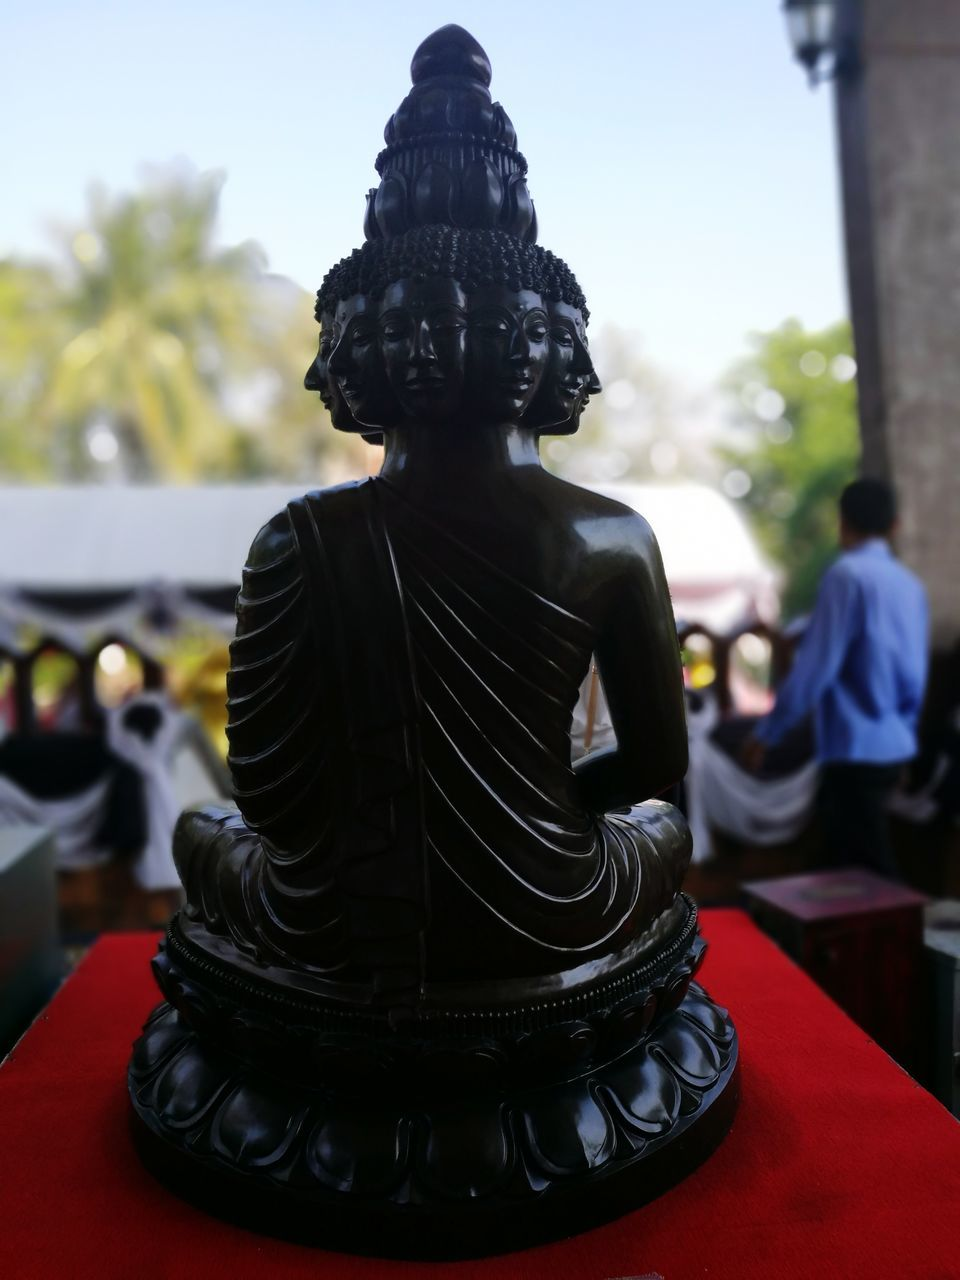 statue, sculpture, human representation, religion, spirituality, male likeness, focus on foreground, idol, place of worship, day, no people, outdoors, close-up